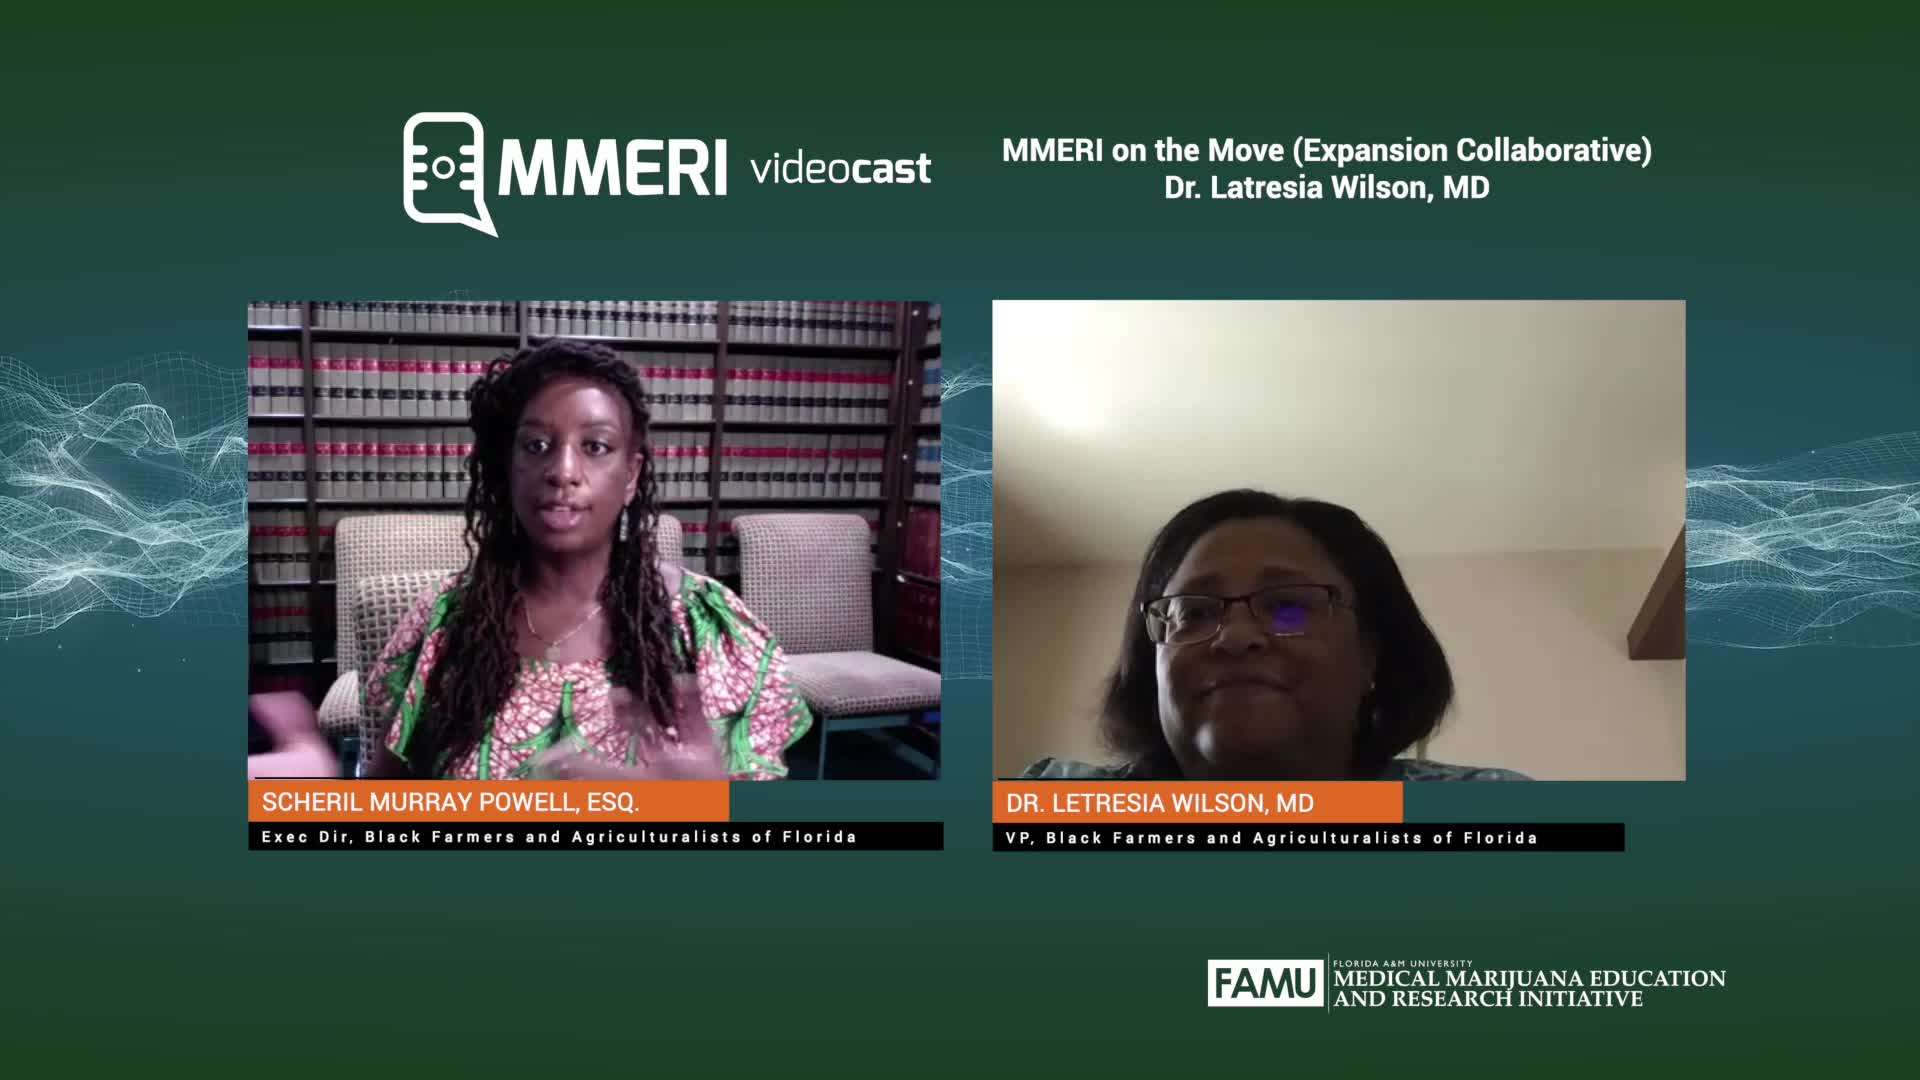 Videocast MMERI 04/29/2020 Dr. Letresia Wilson, MD